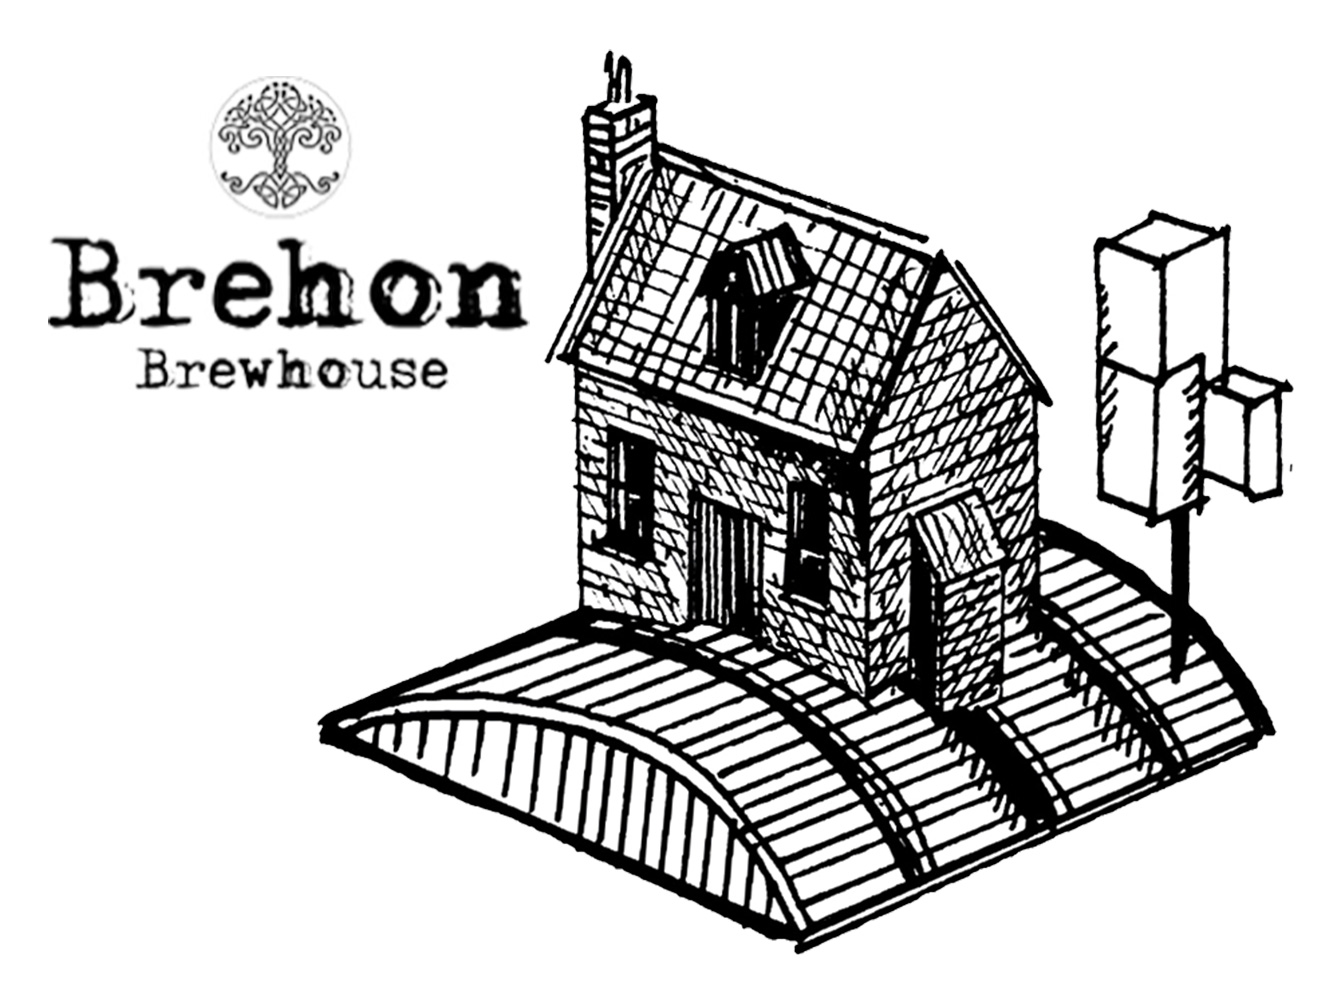 The Brewery Brehon Brewhouse